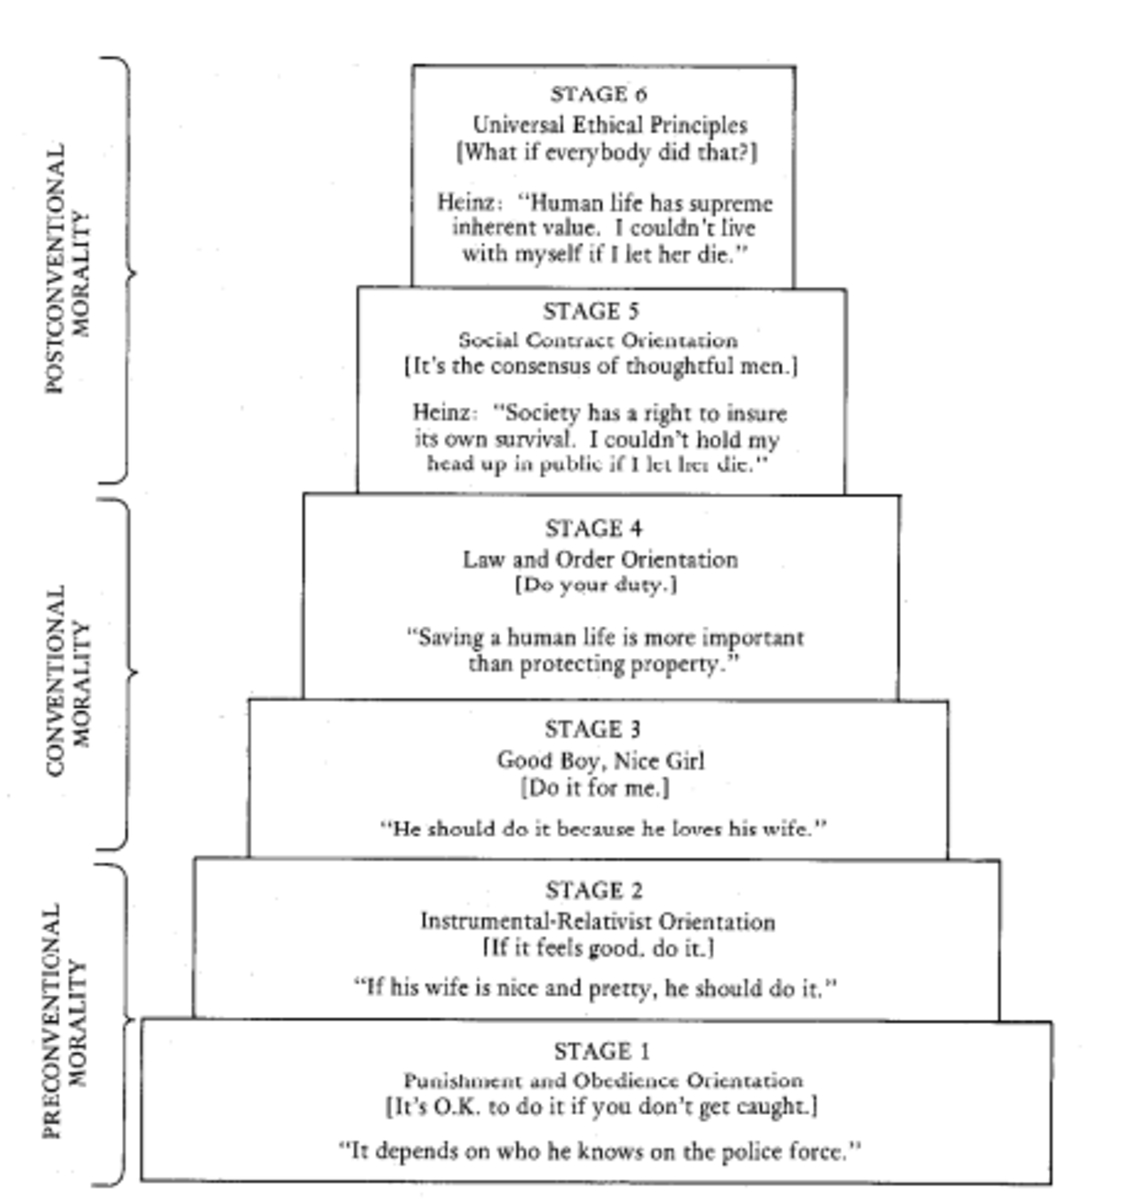 Kohlber's Model of Moral Development